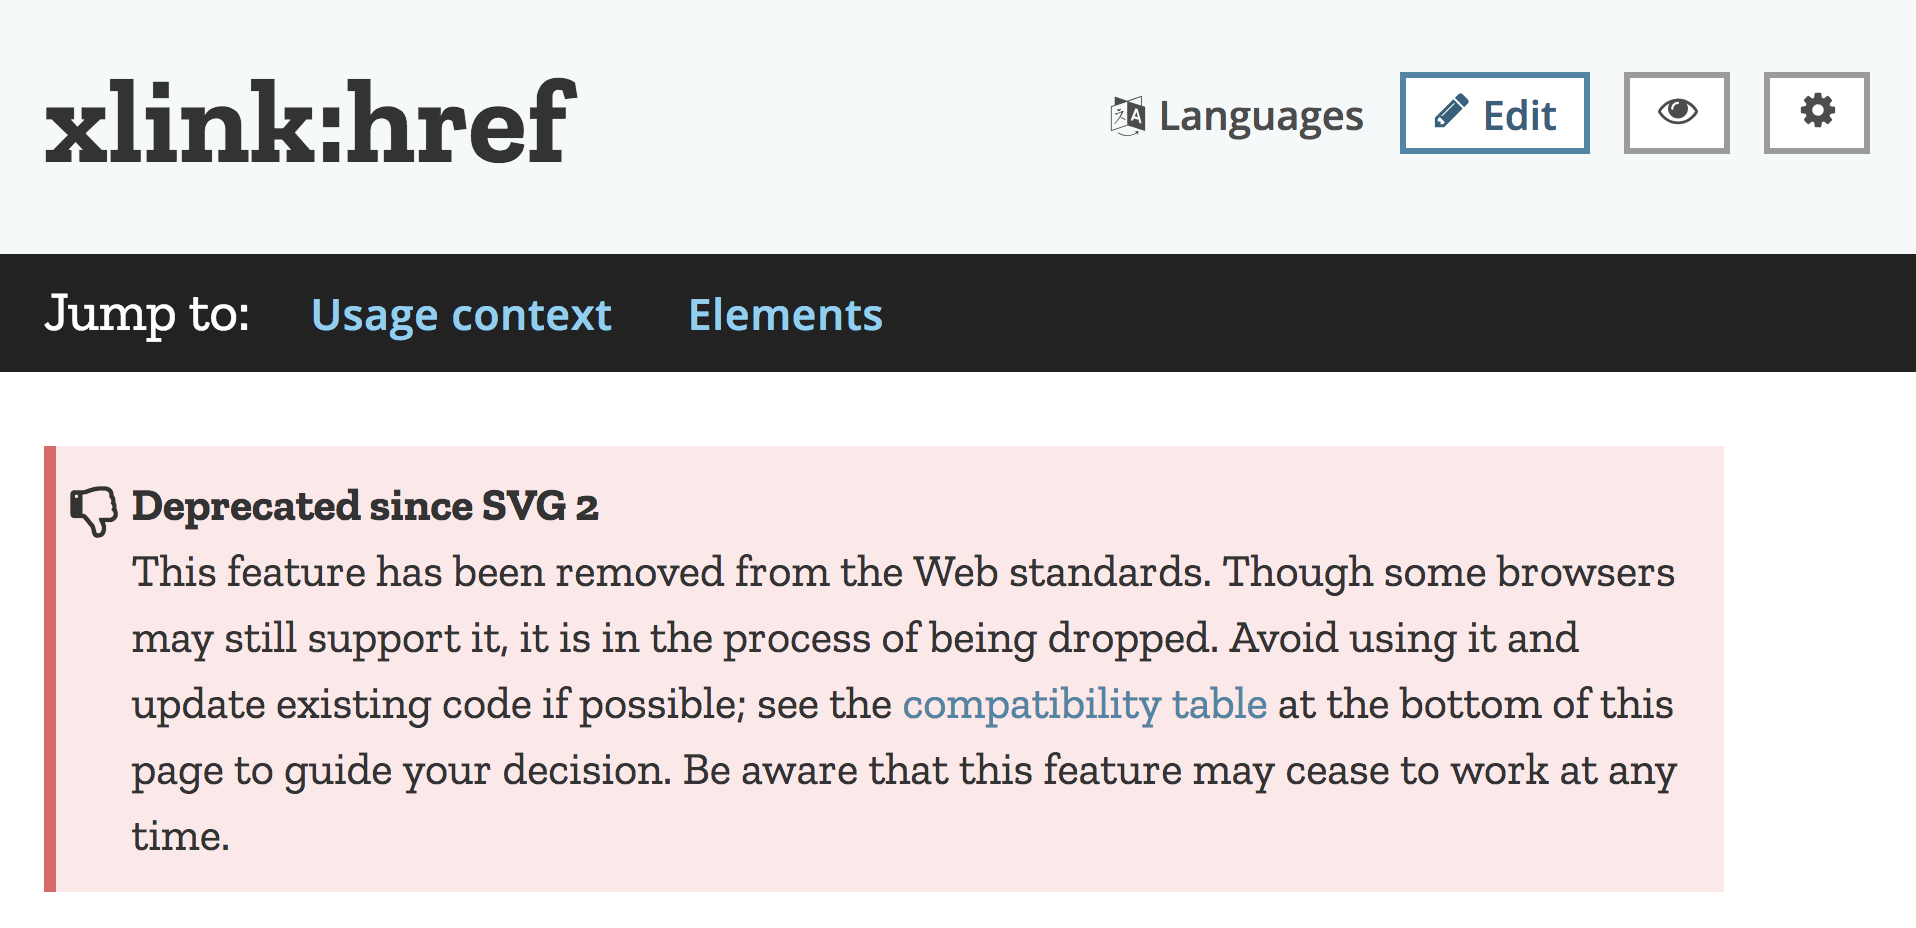 Deprecated since SVG 2 This feature has been removed from the Web standards. Though some browsers may still support it, it is in the process of being dropped. Avoid using it and update existing code if possible; see the compatibility table at the bottom of this page to guide your decision. Be aware that this feature may cease to work at any time.